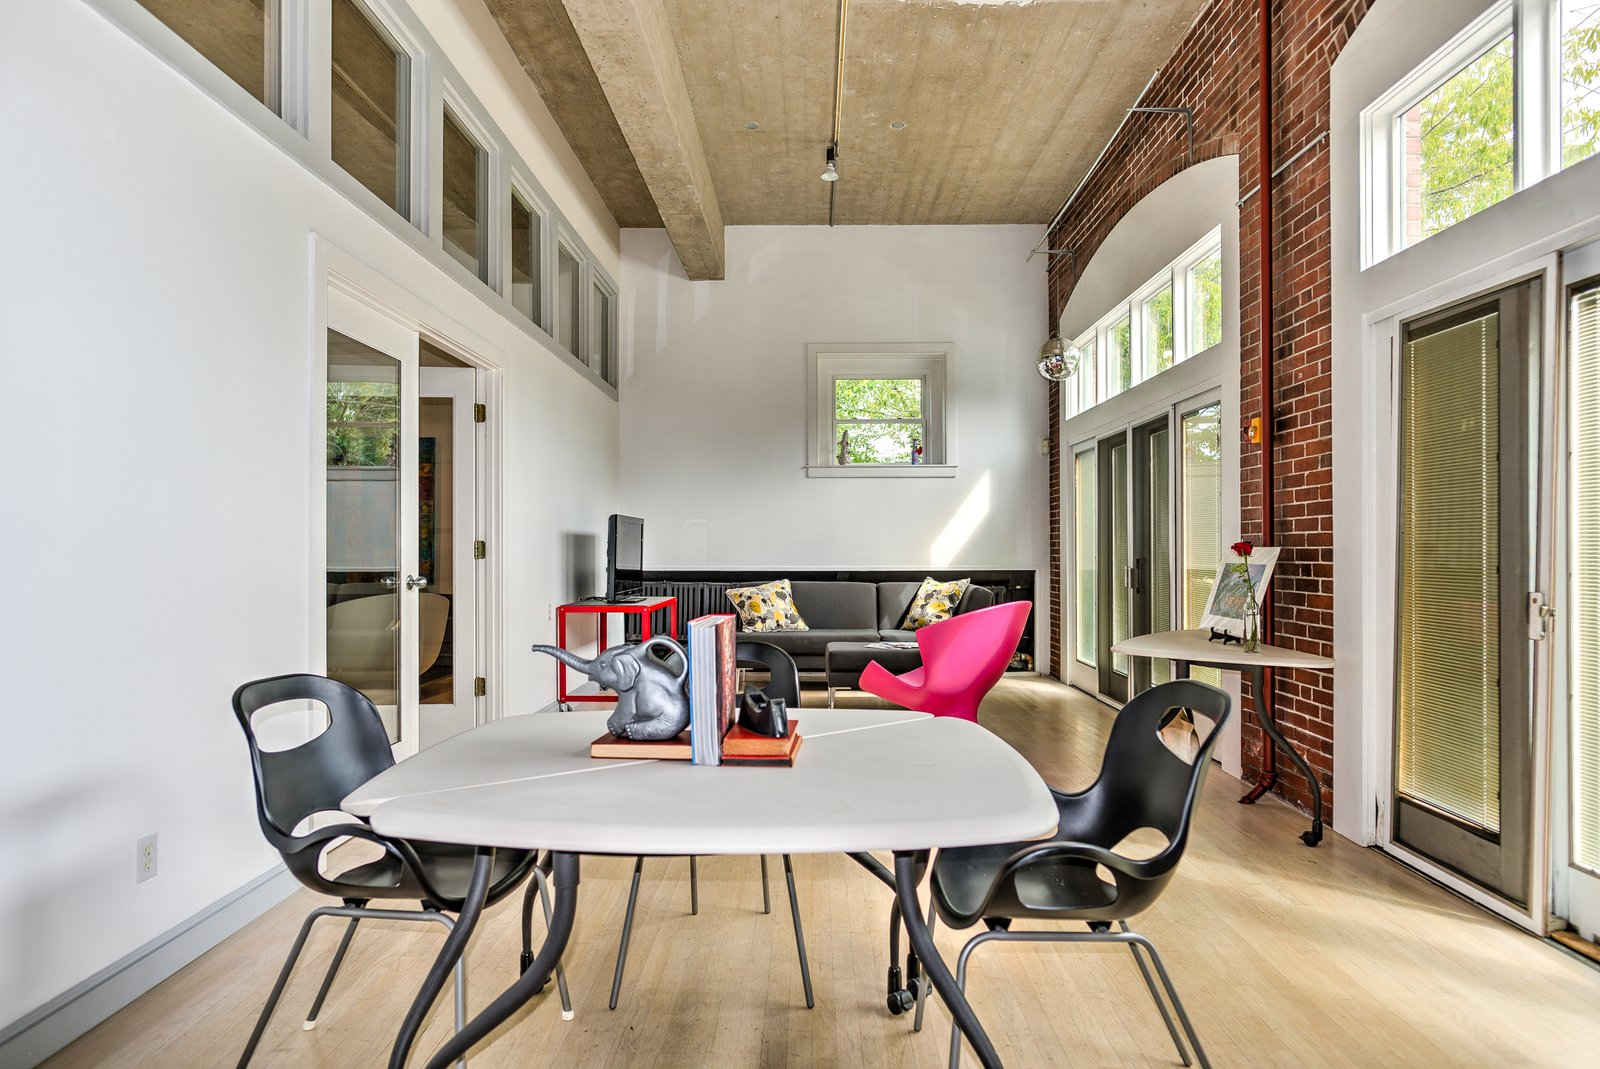 Towards the front of the house, where the original garage doors have been replaced by French doors and transom windows, is a multifunctional space with brick walls that currently functions as an office.  Photo 5 of 9 in A Converted Firehouse Fit For an Artist Is Listed at $749K